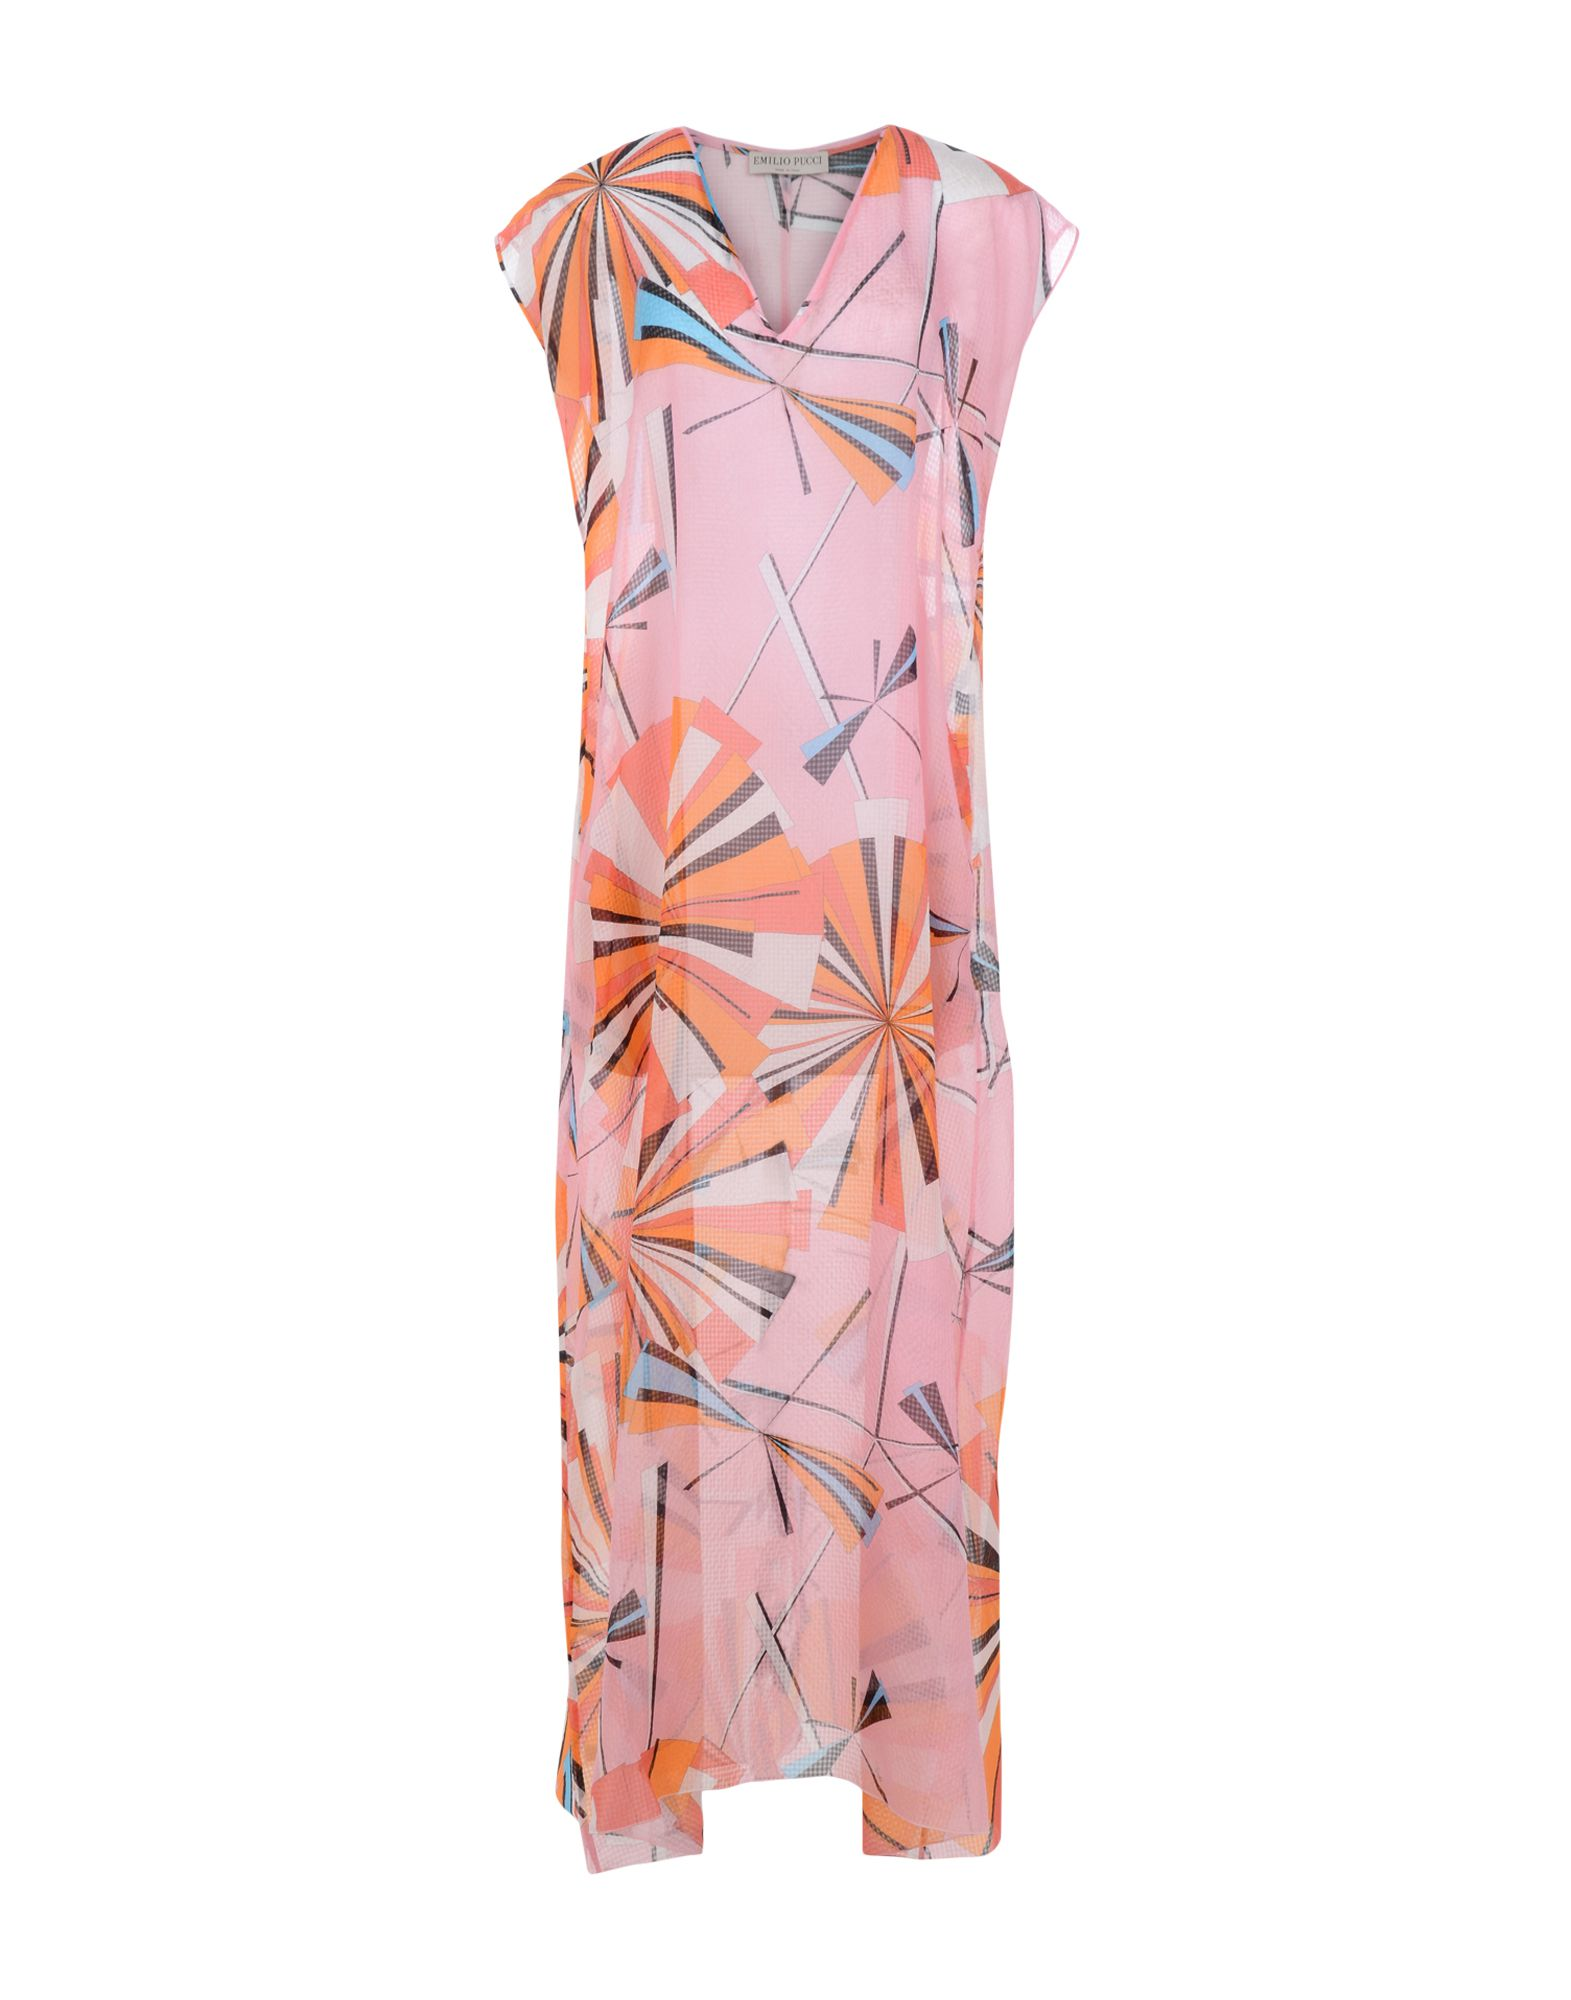 Emilio Pucci Women - shop online dresses, shoes, scarves and more at YOOX  United States